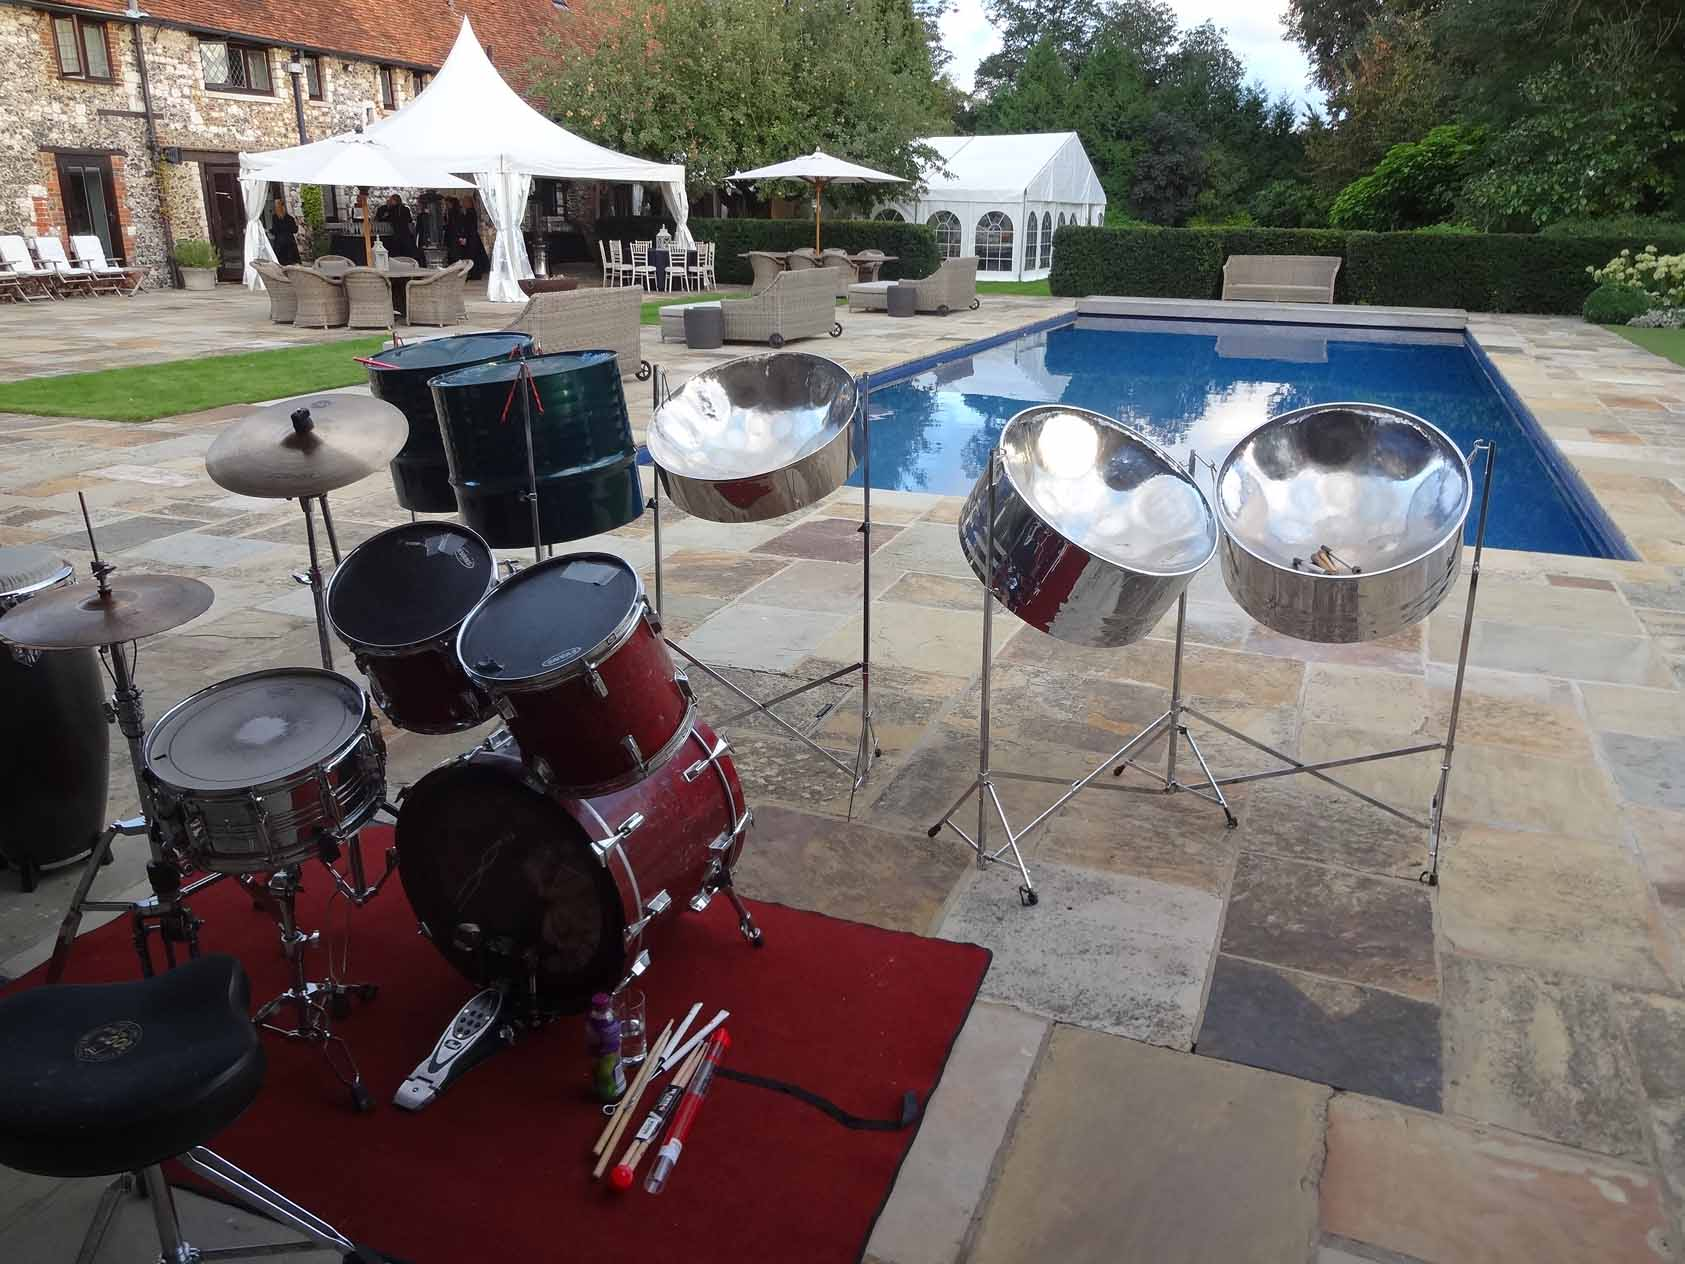 FAQ. Which steel band to hire for a wedding? How much do steel bands cost? Which is the best steel drum band?